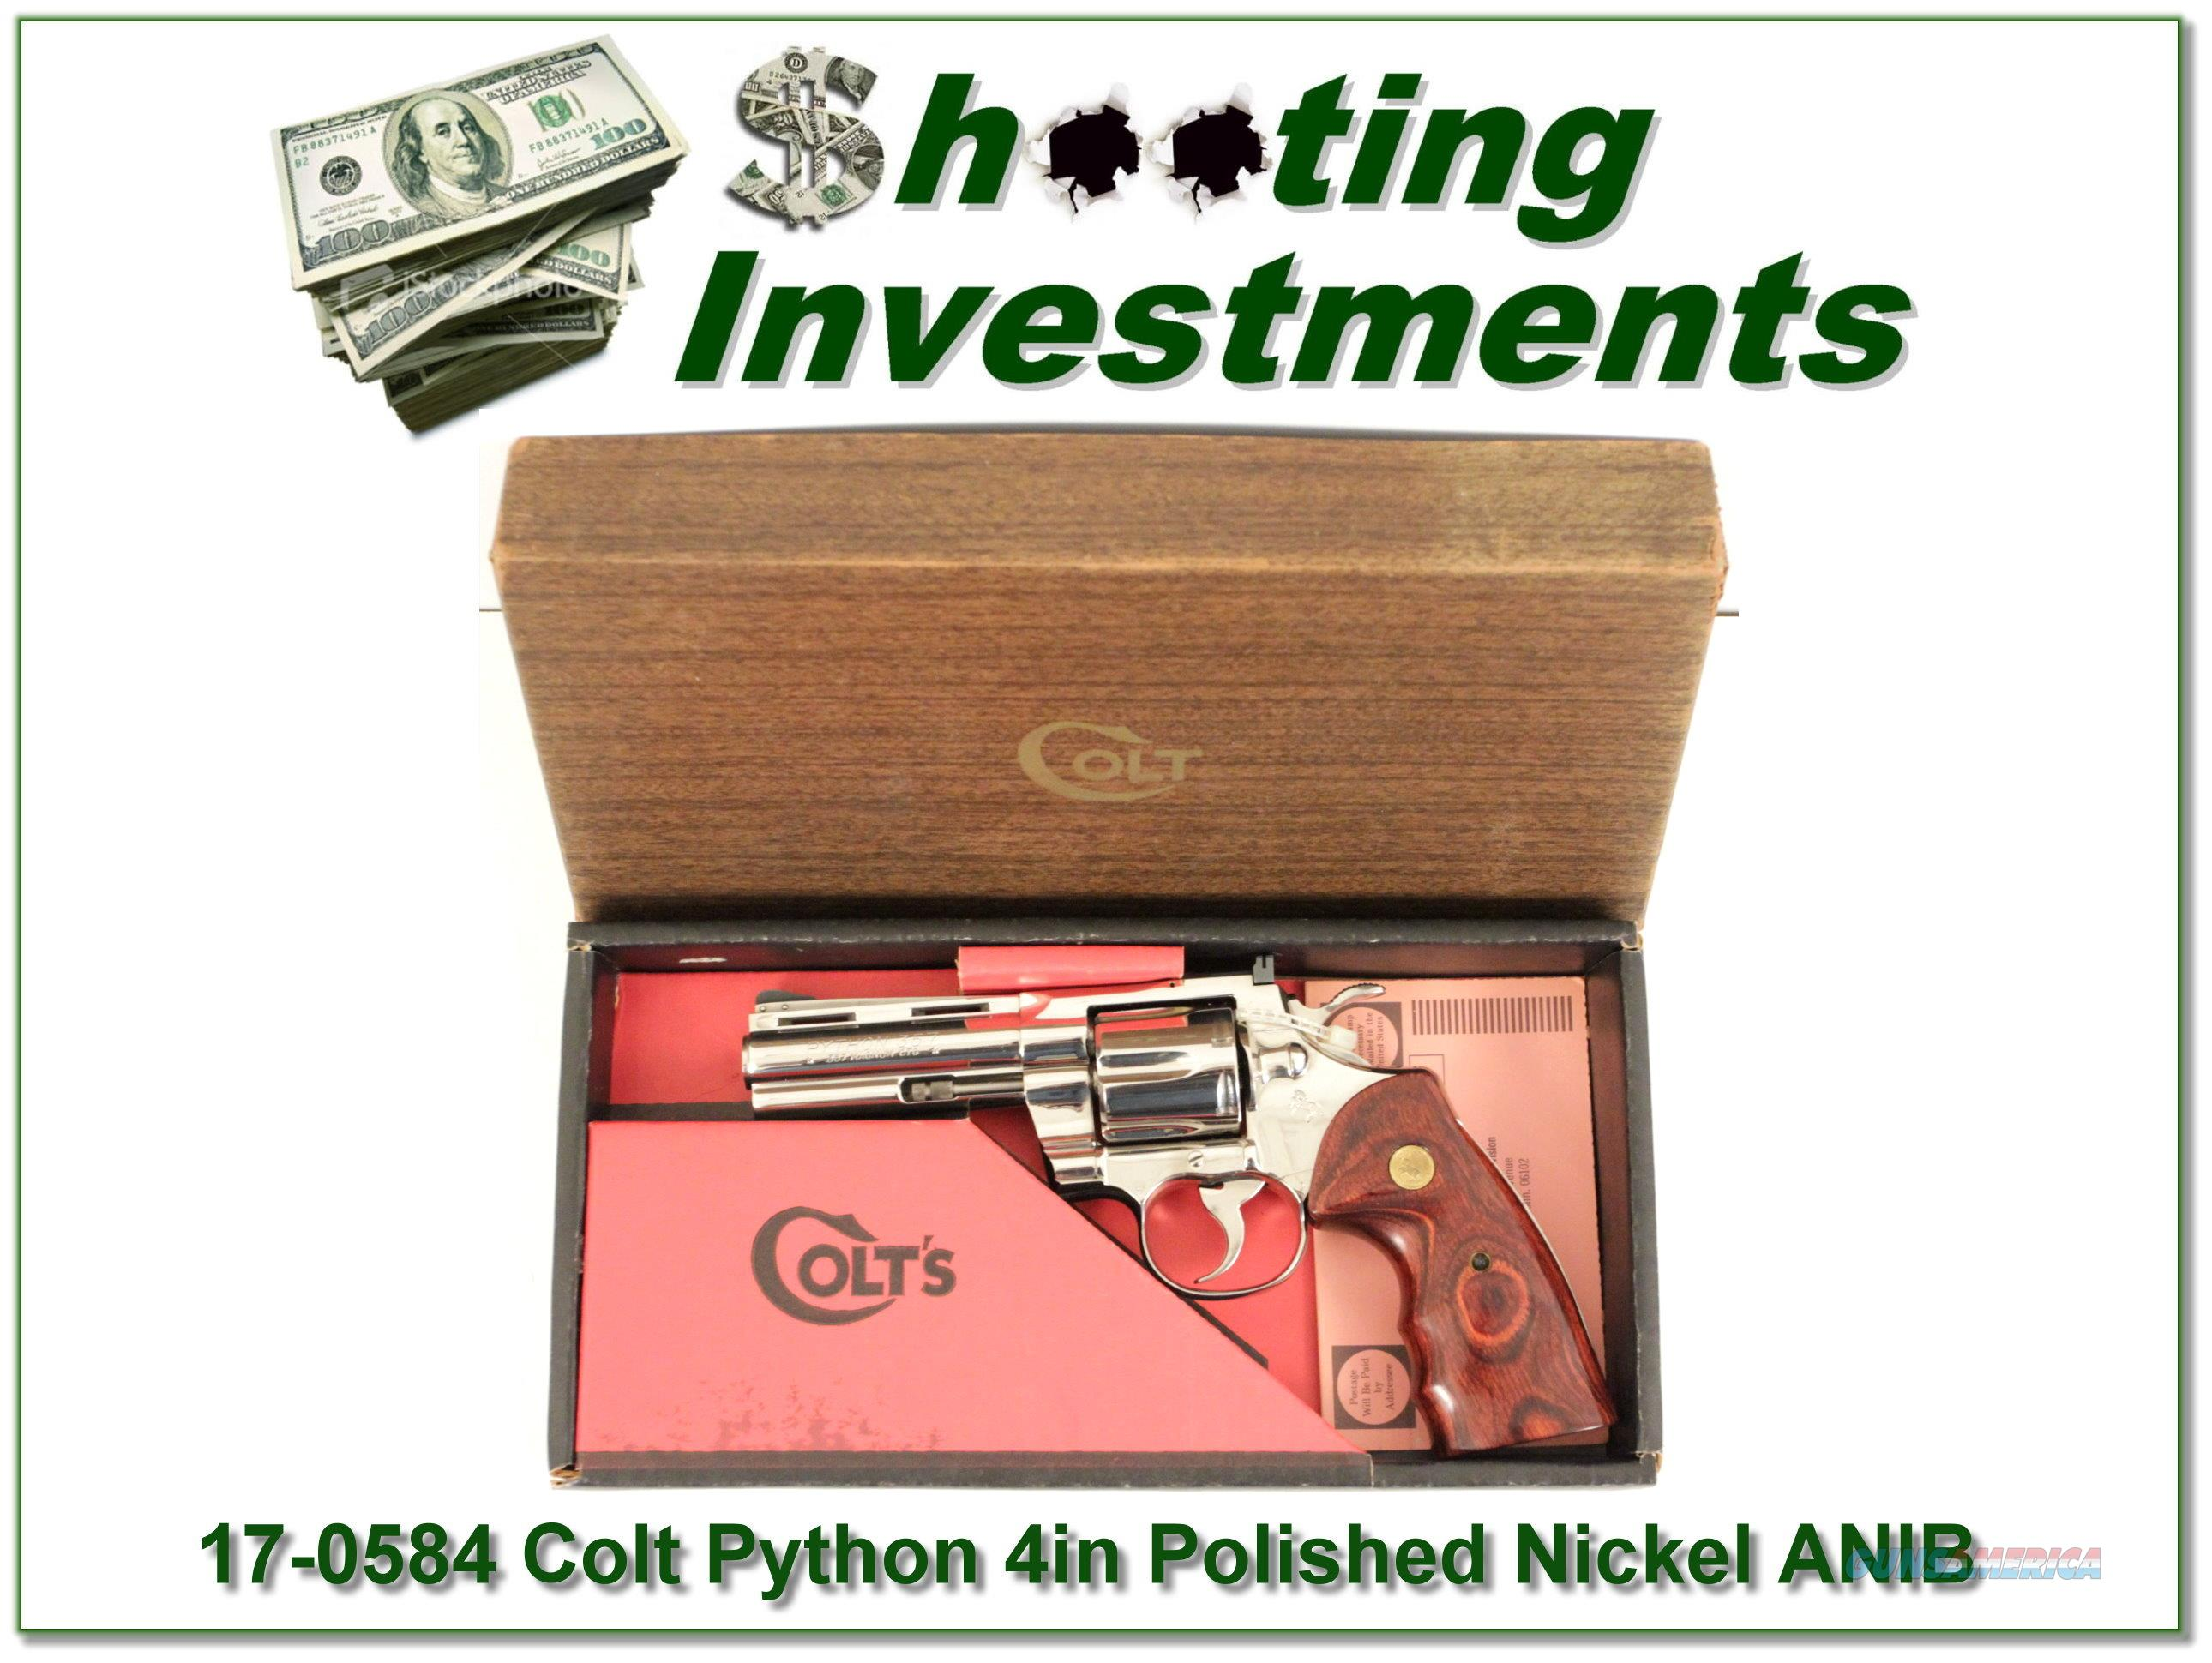 Colt Python 4in Polished Nickel 1976 in box!  Guns > Pistols > Colt Double Action Revolvers- Modern